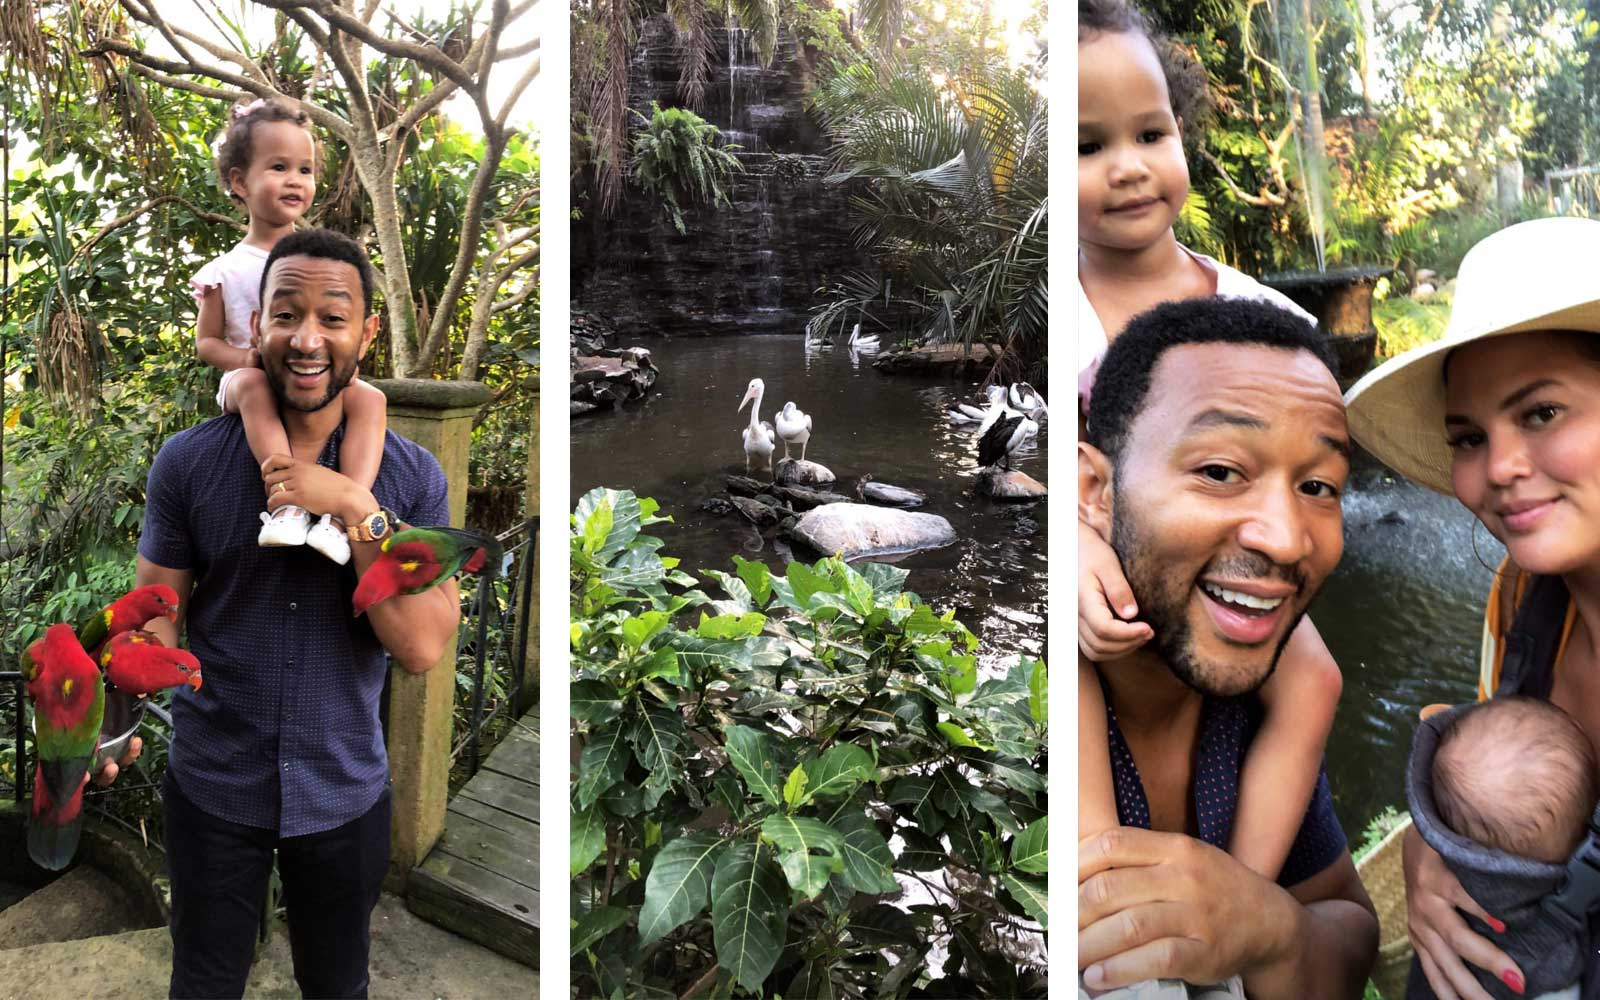 Chrissy Teigen and John Legend Took Luna to Meet Exotic Birds in Bali and the Photos Are Adorable